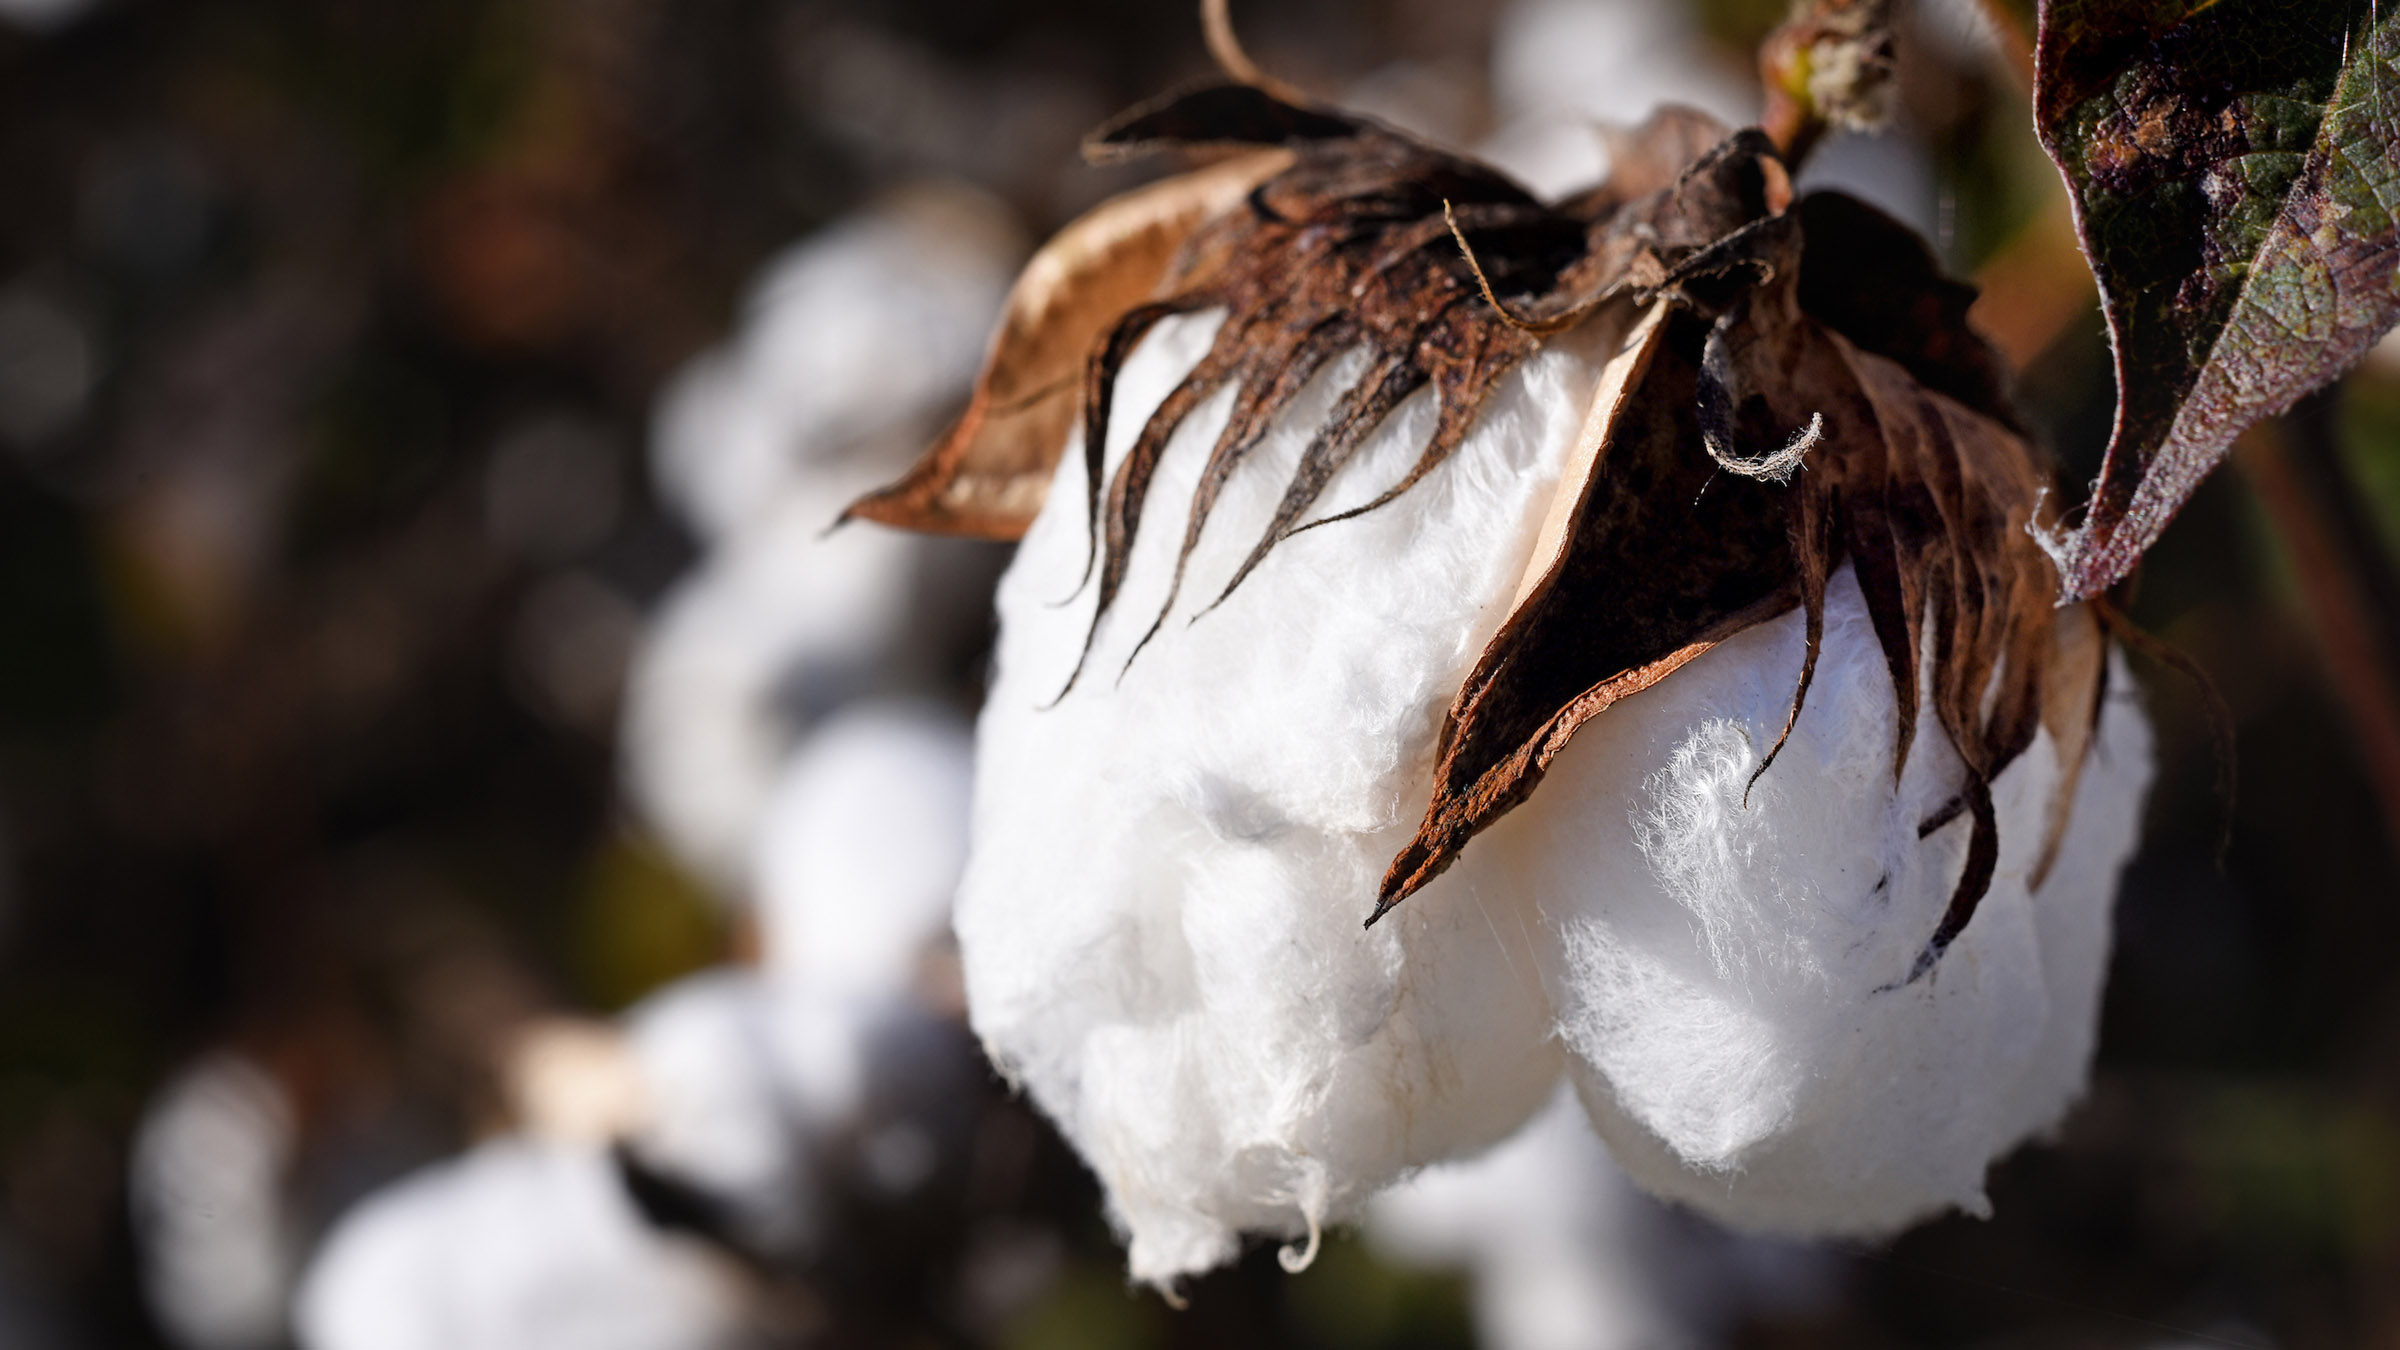 Close-up of the cotton ball on the plant in the field.